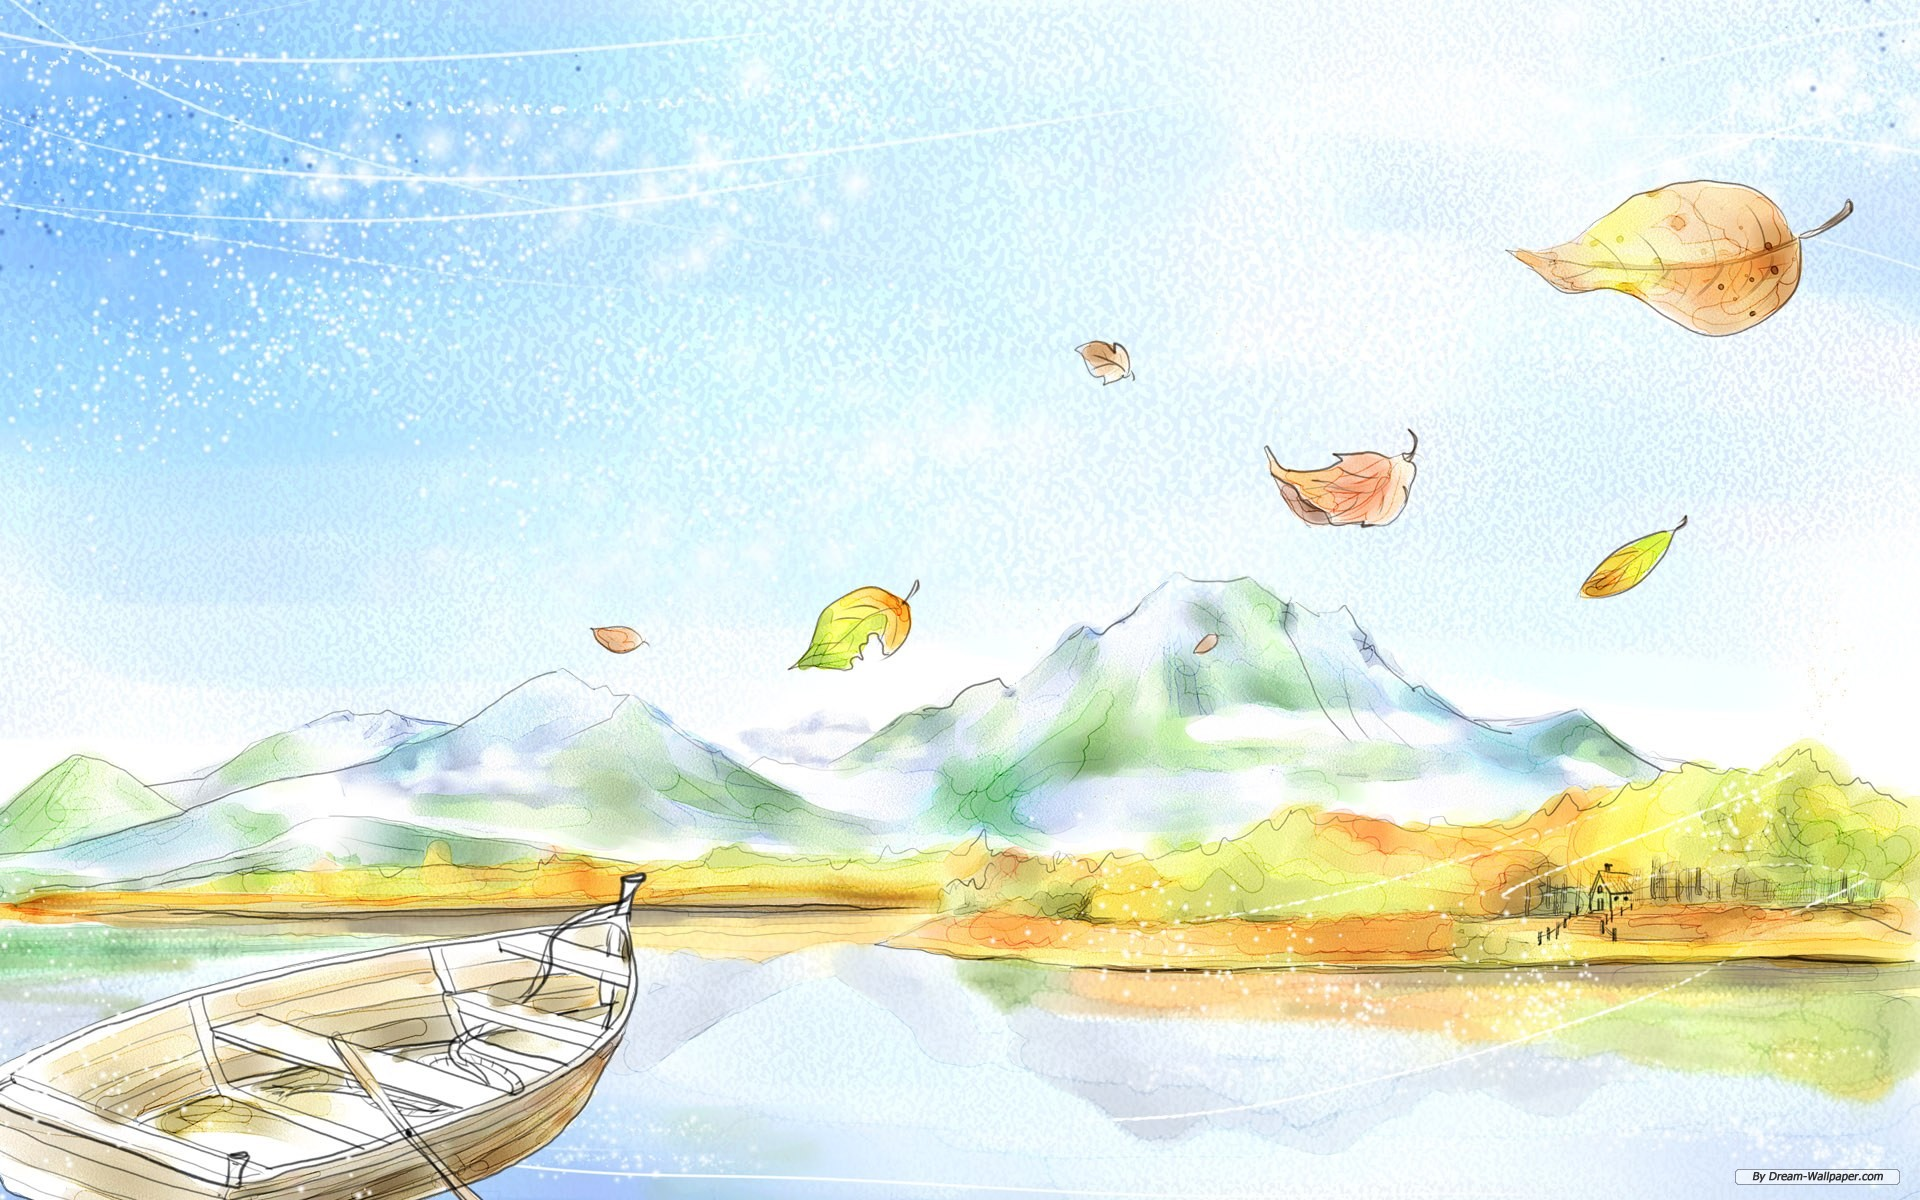 Drawn scenery nice scenery Scenery wallpaper Scenery Drawing pictures